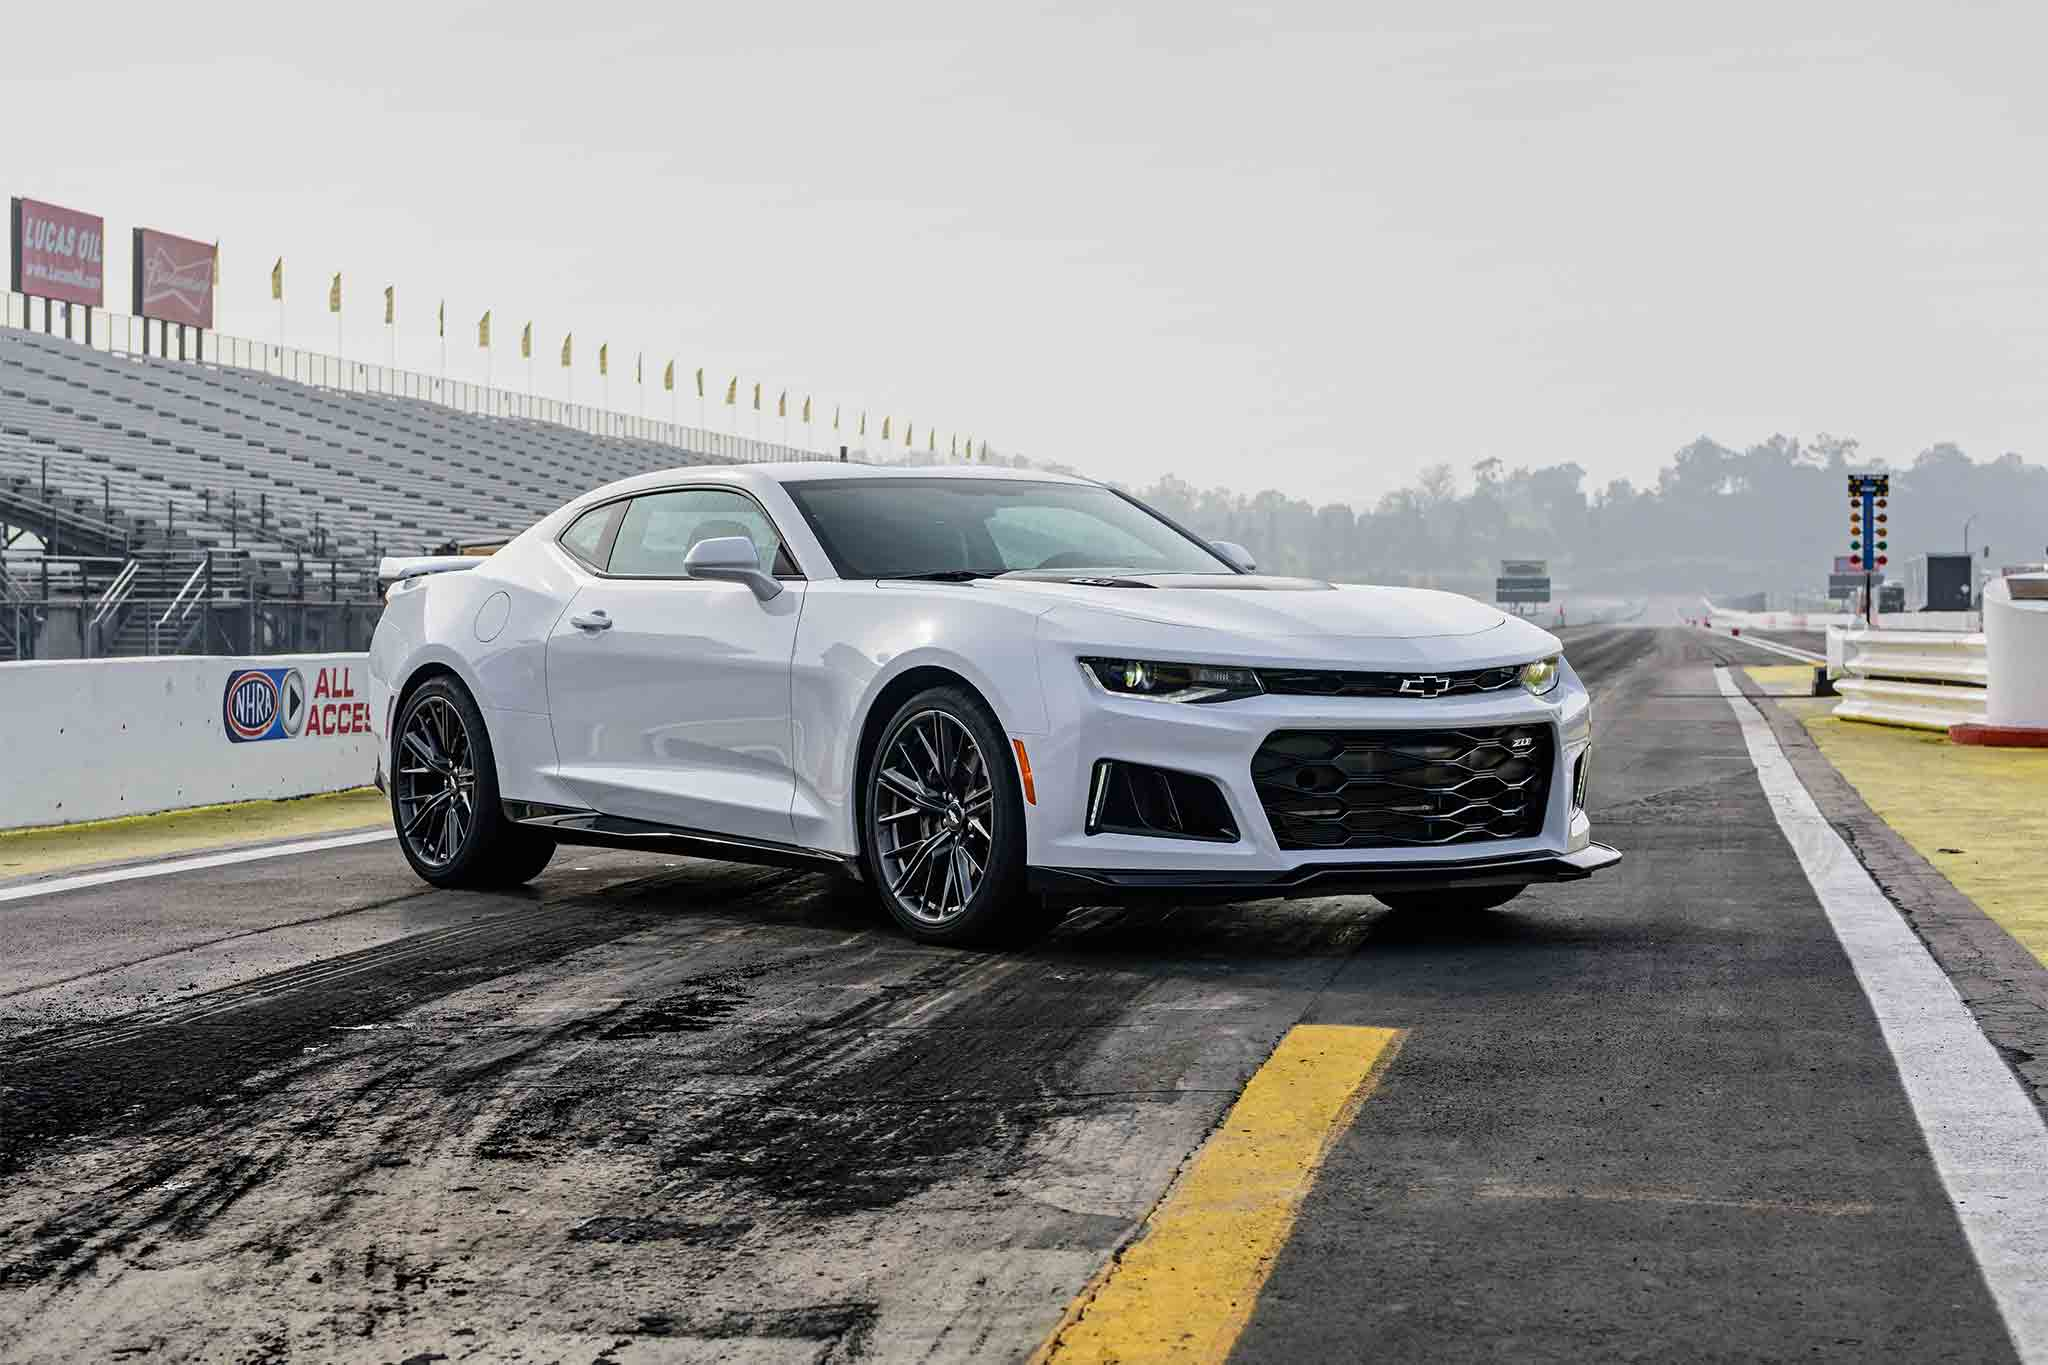 2017 chevrolet camaro zl1 white wallpaper background